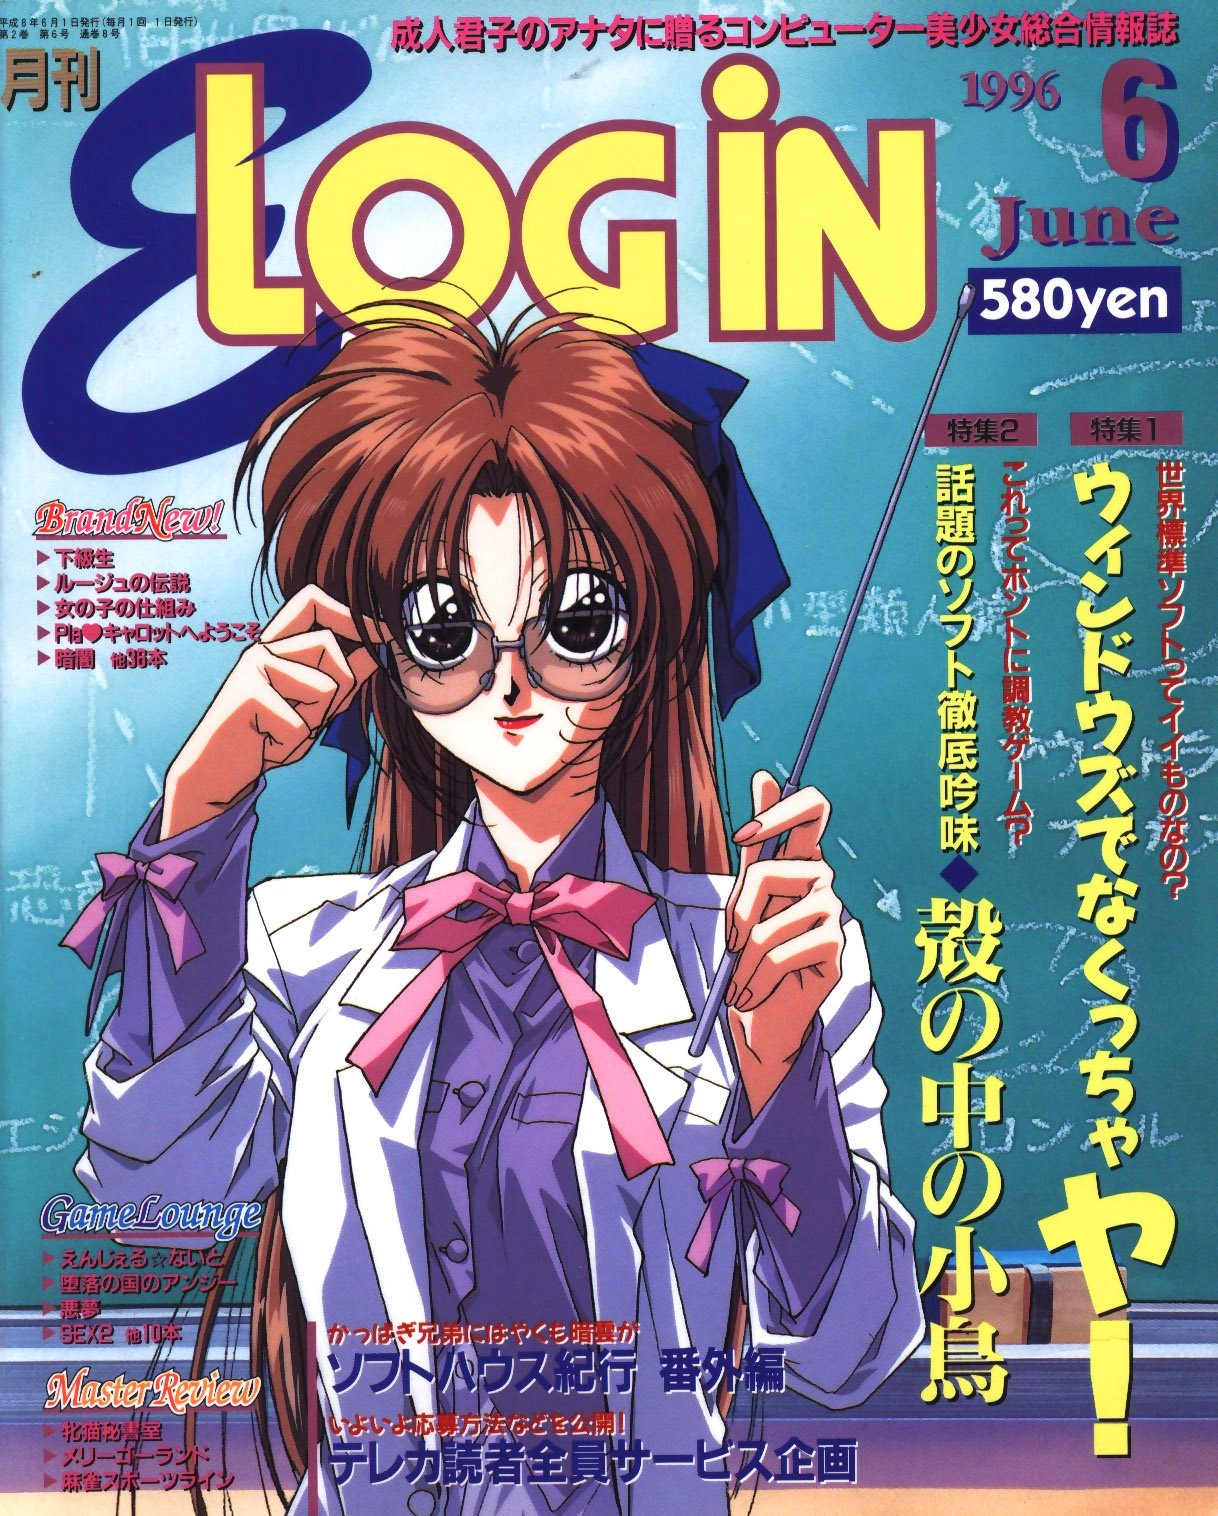 E-Login Issue 008 (June 1996)